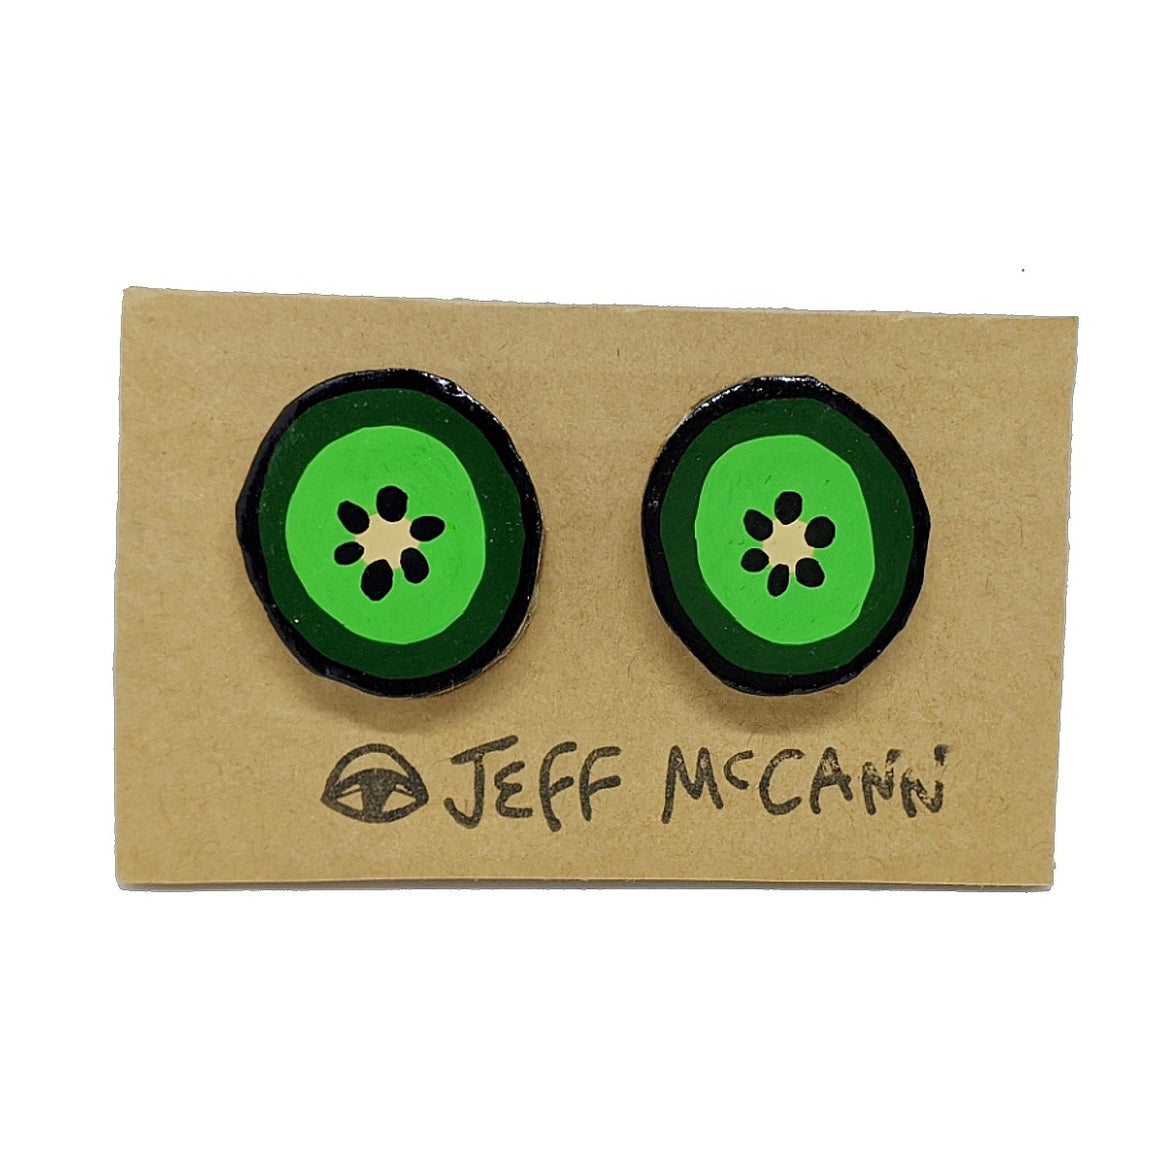 A Pair of stud Earrings made of hand painted cardboard. A design in the shape of a kiwi fruit cut open - in green, yellow and black.